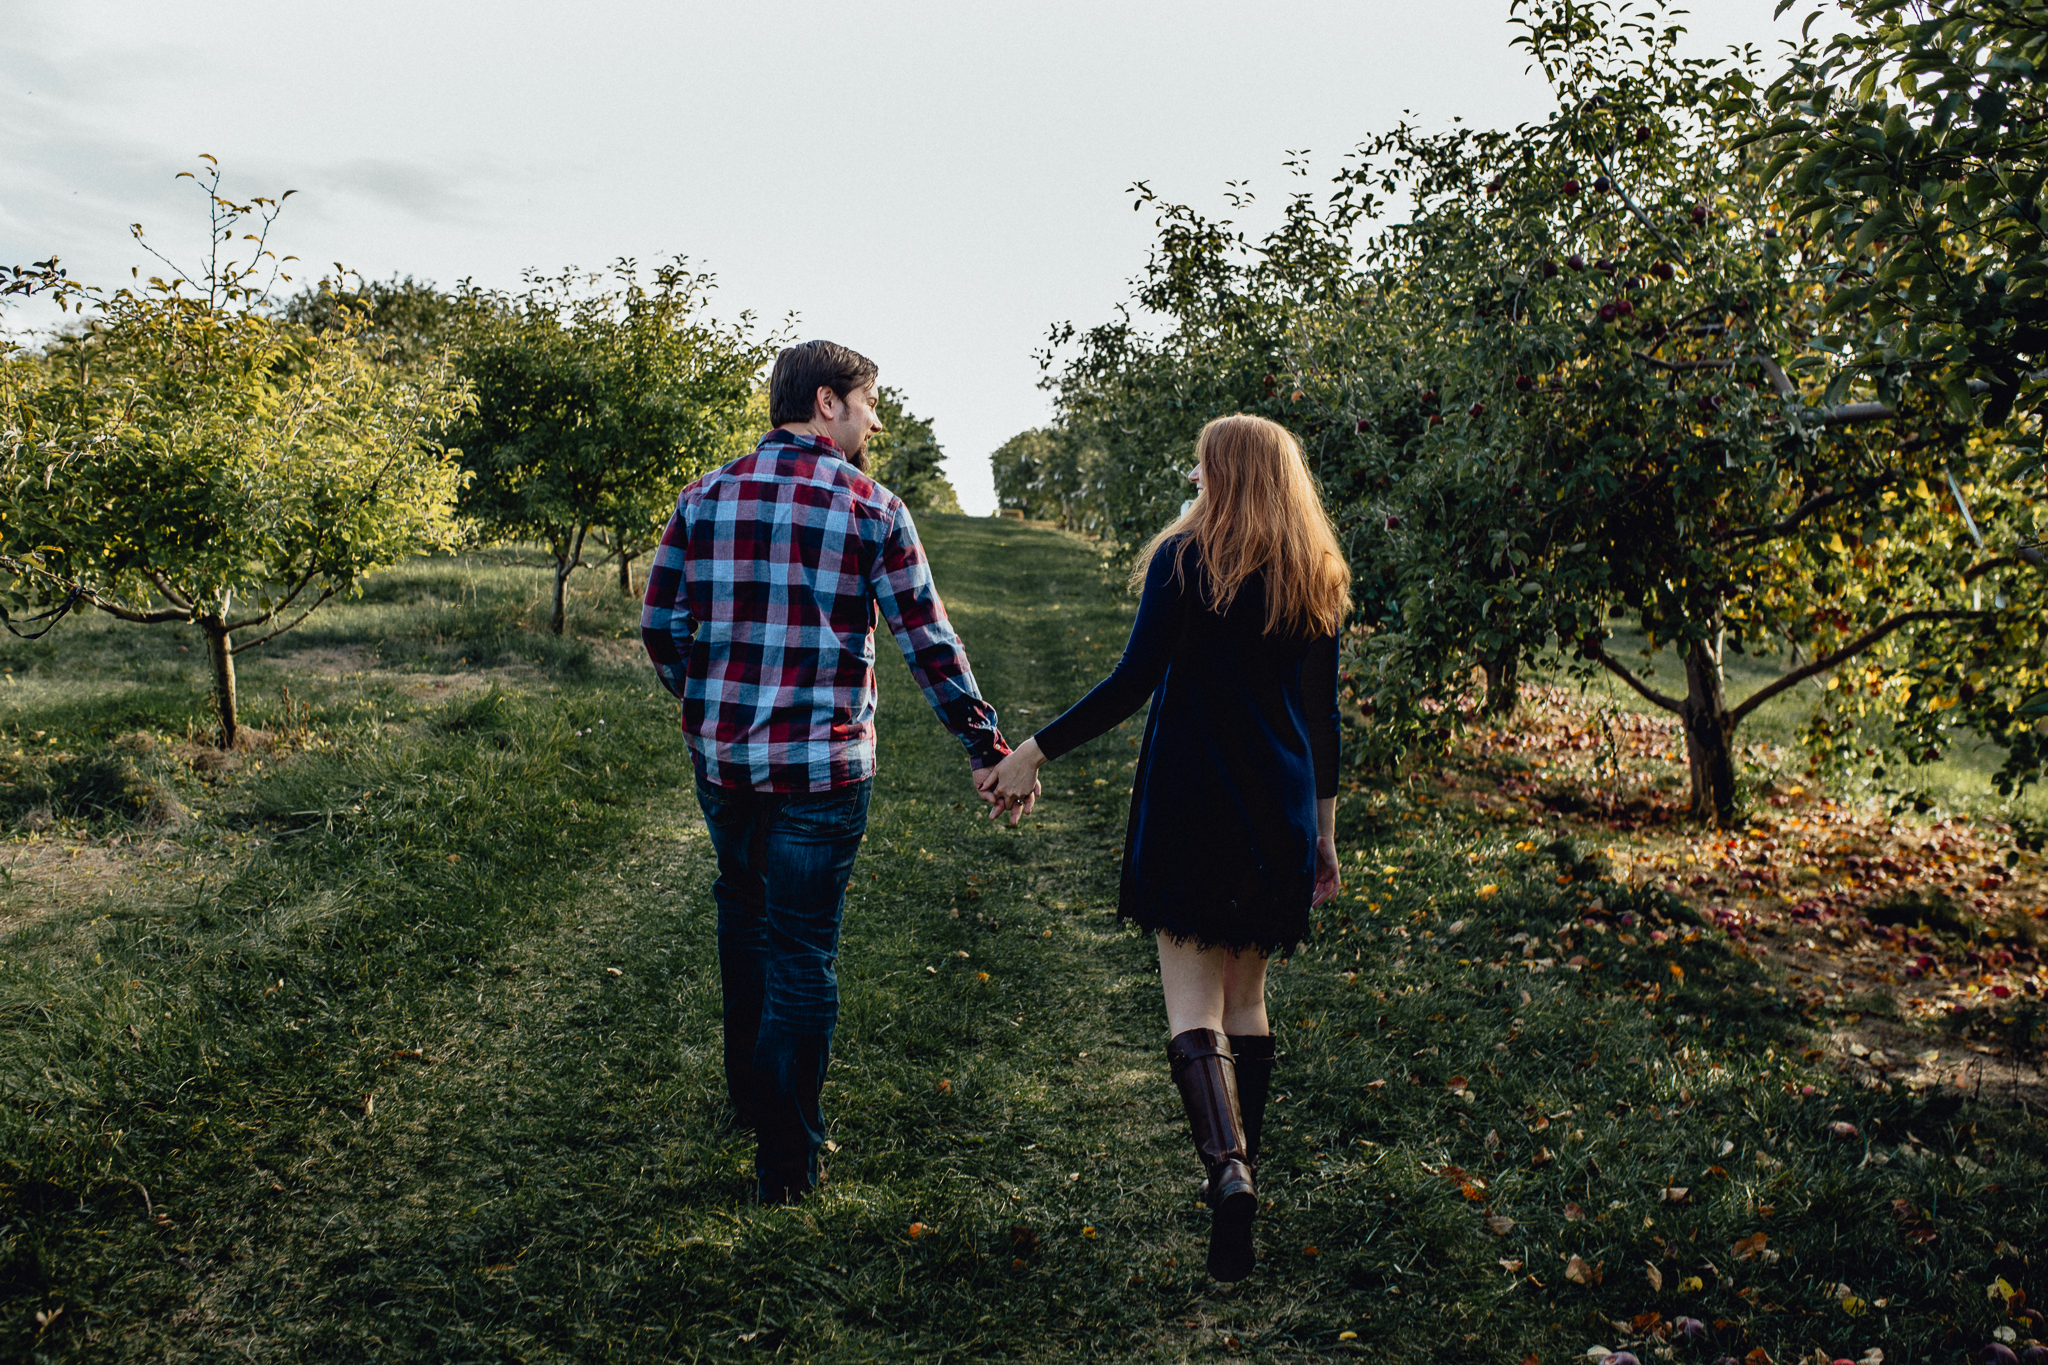 ENGAGEd-couple-walking-in-apple-orchard.jpg